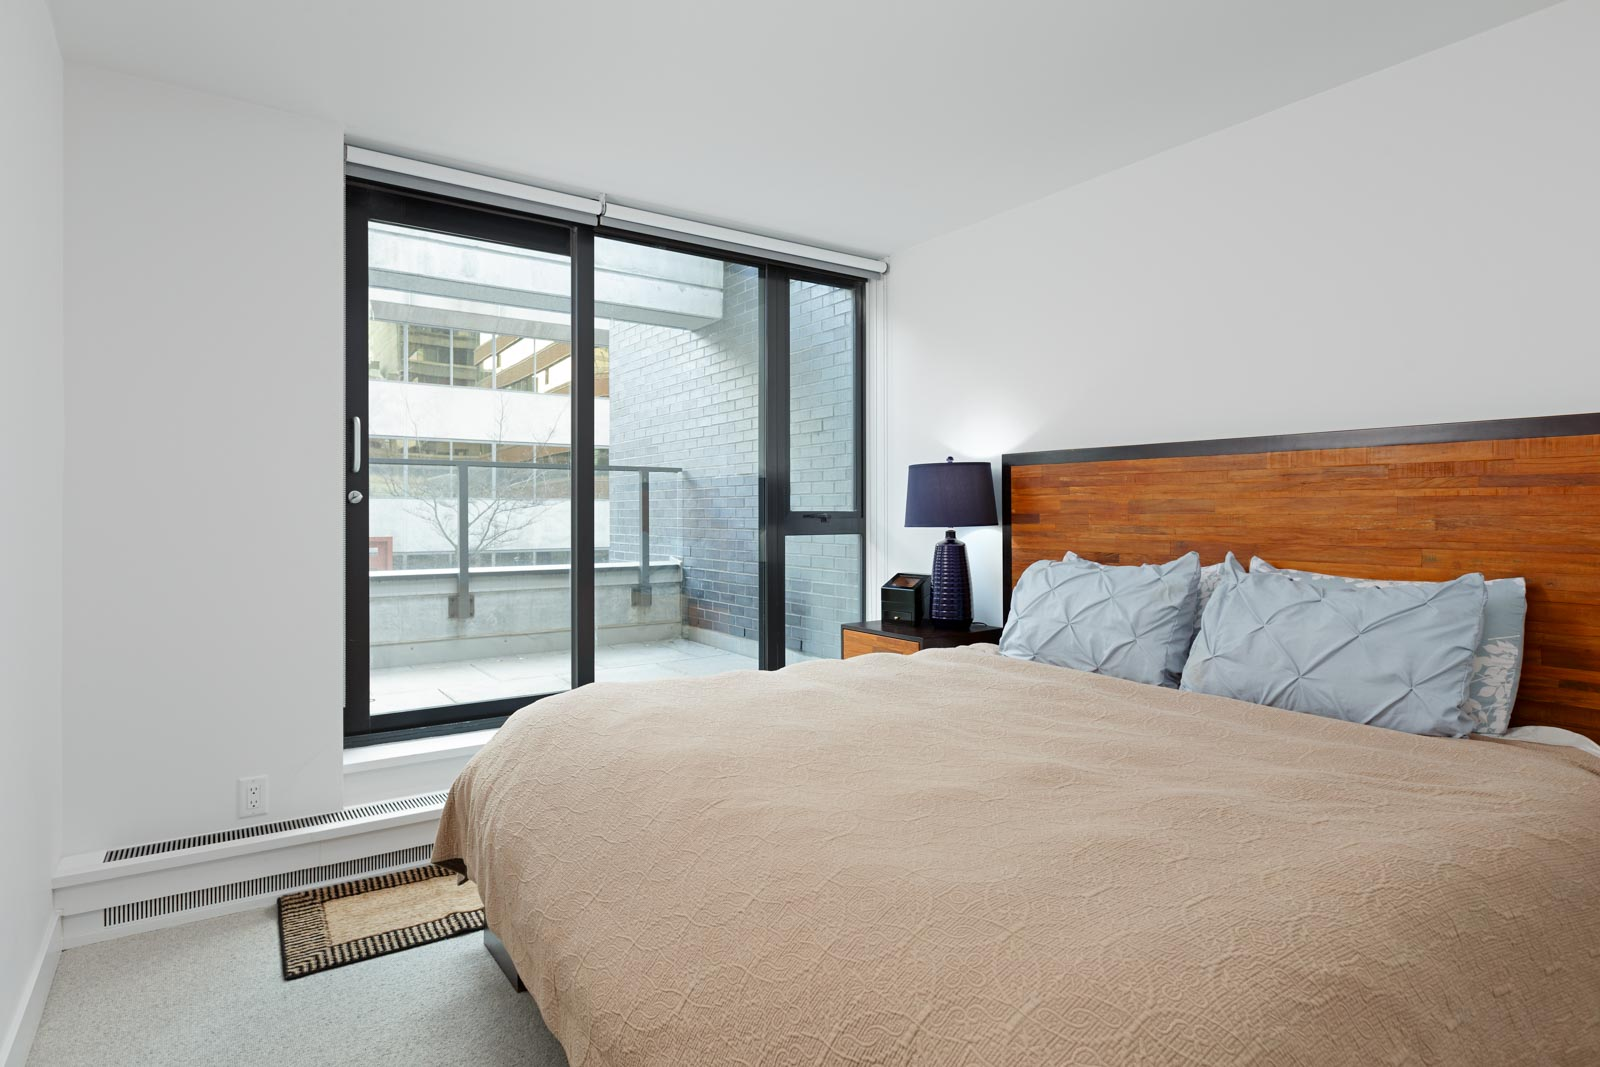 Bedroom with black window frames and access to balcony at Downtown Vancouver rental condo.